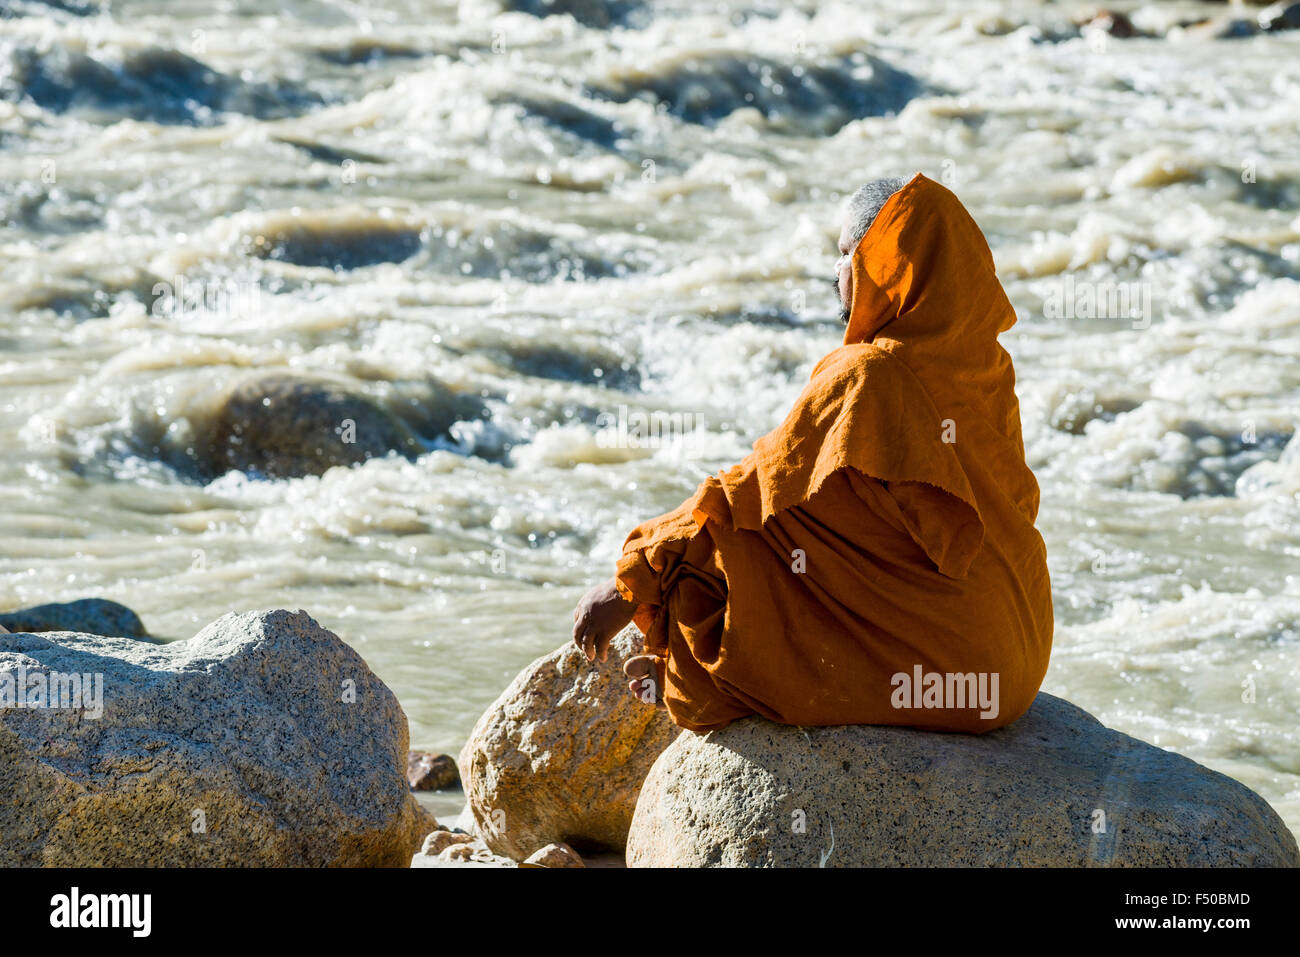 A Sadhu, holy man, is sitting on a rock and meditating at the banks of the river Ganges - Stock Image